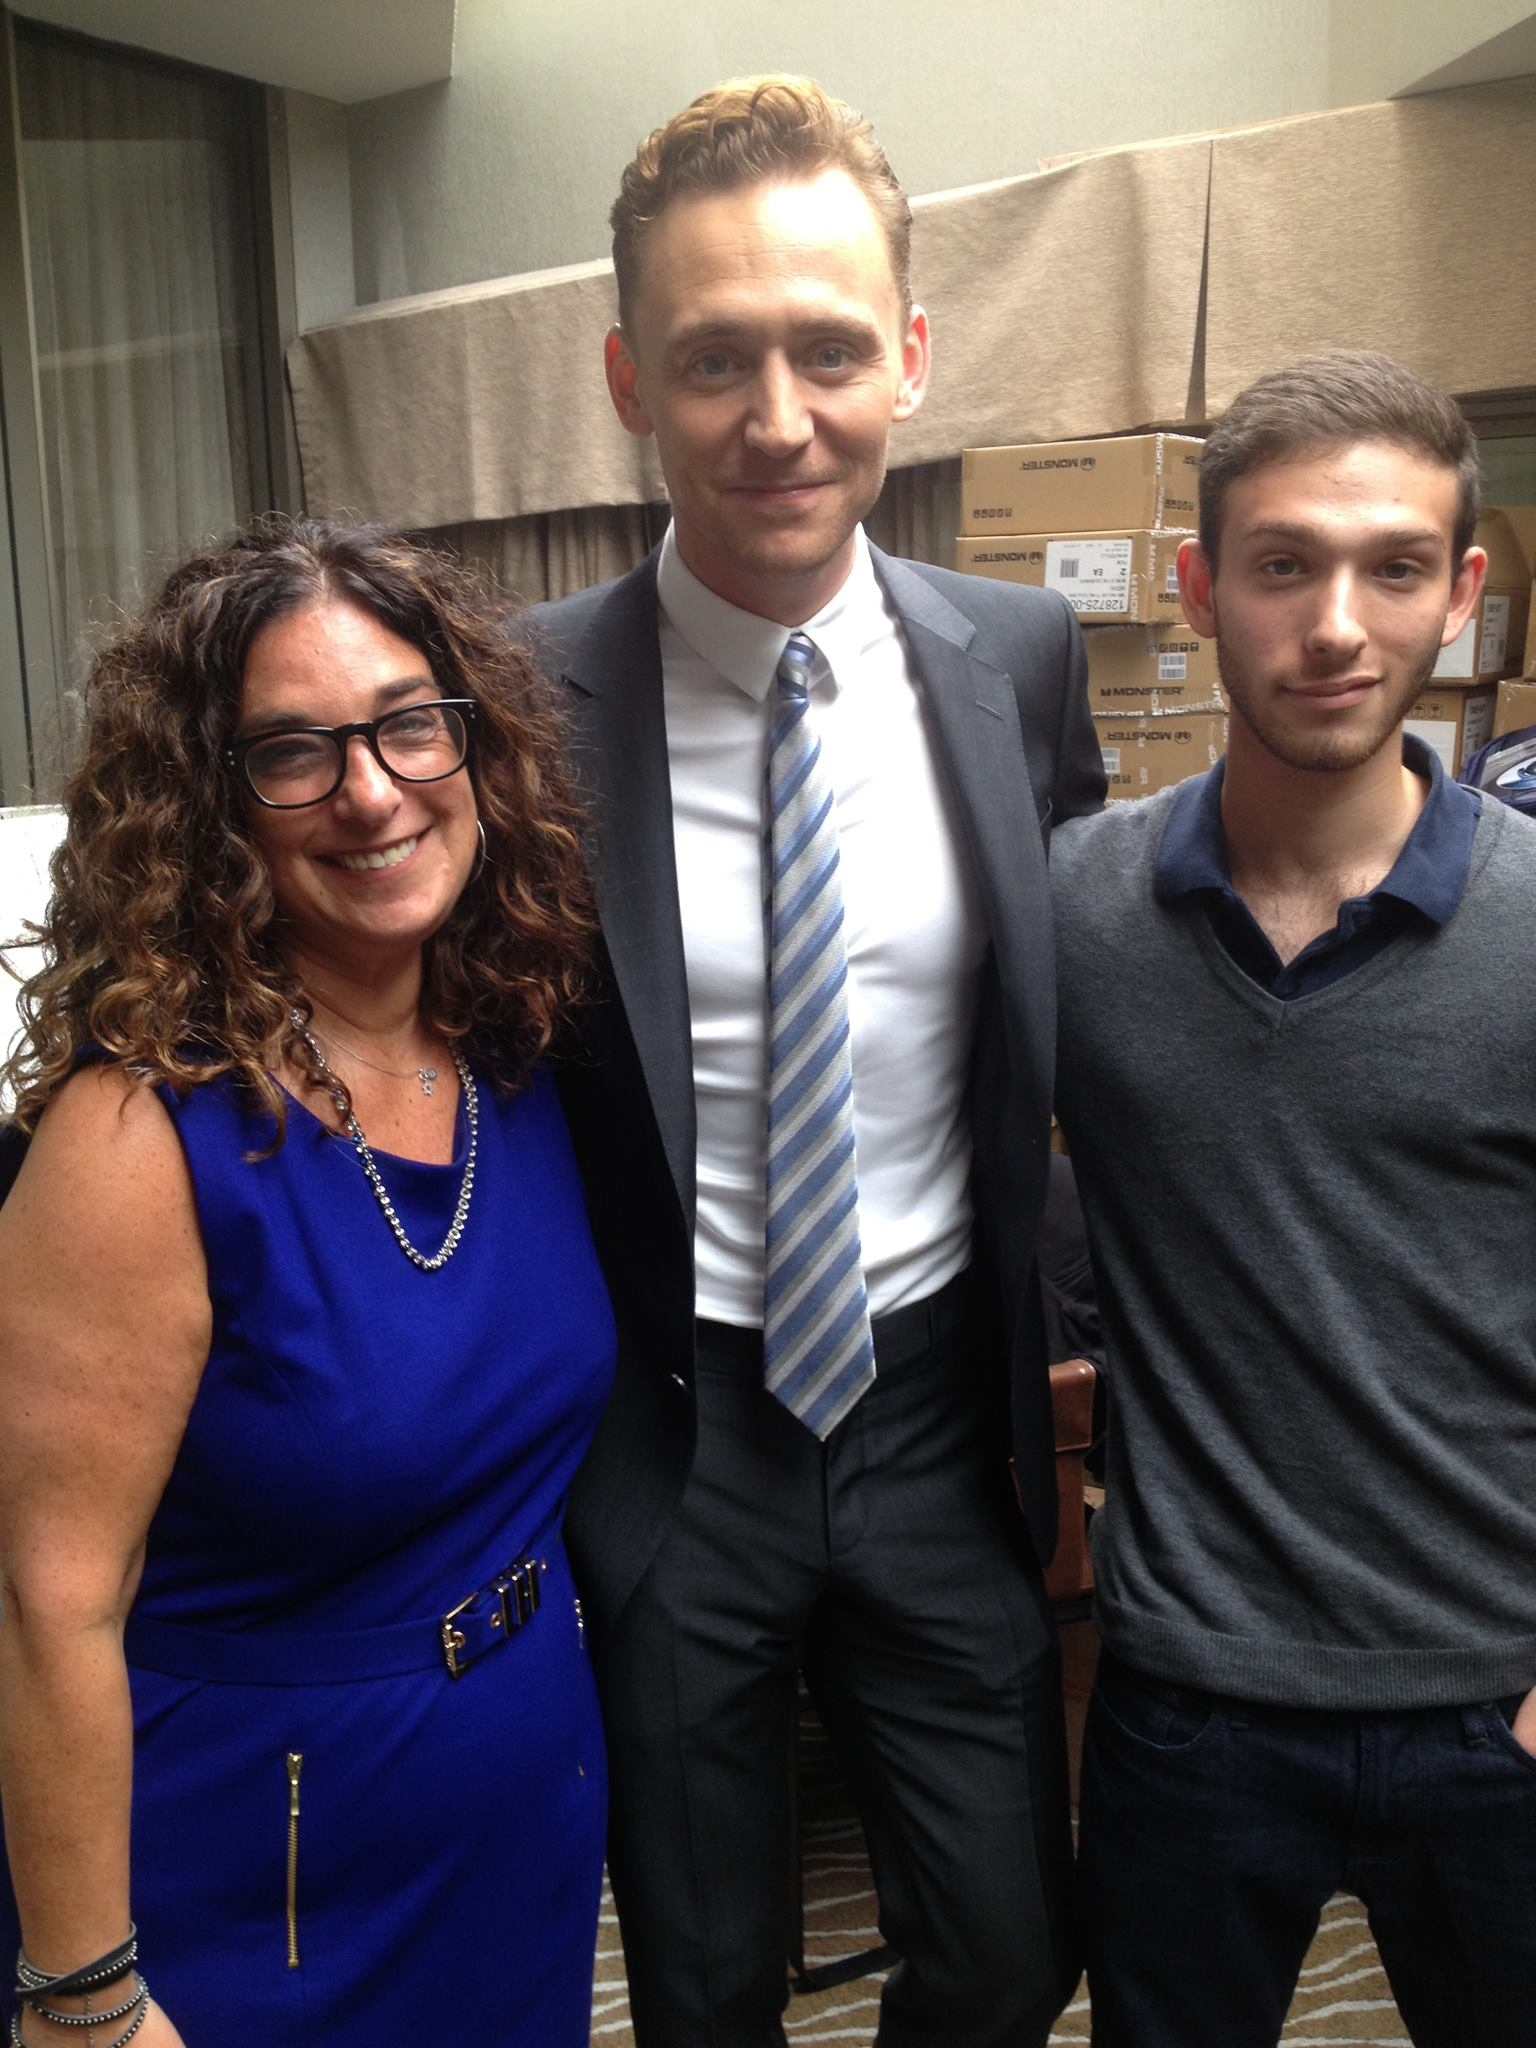 With the always lovely Tom HIddleston and my son, Jared